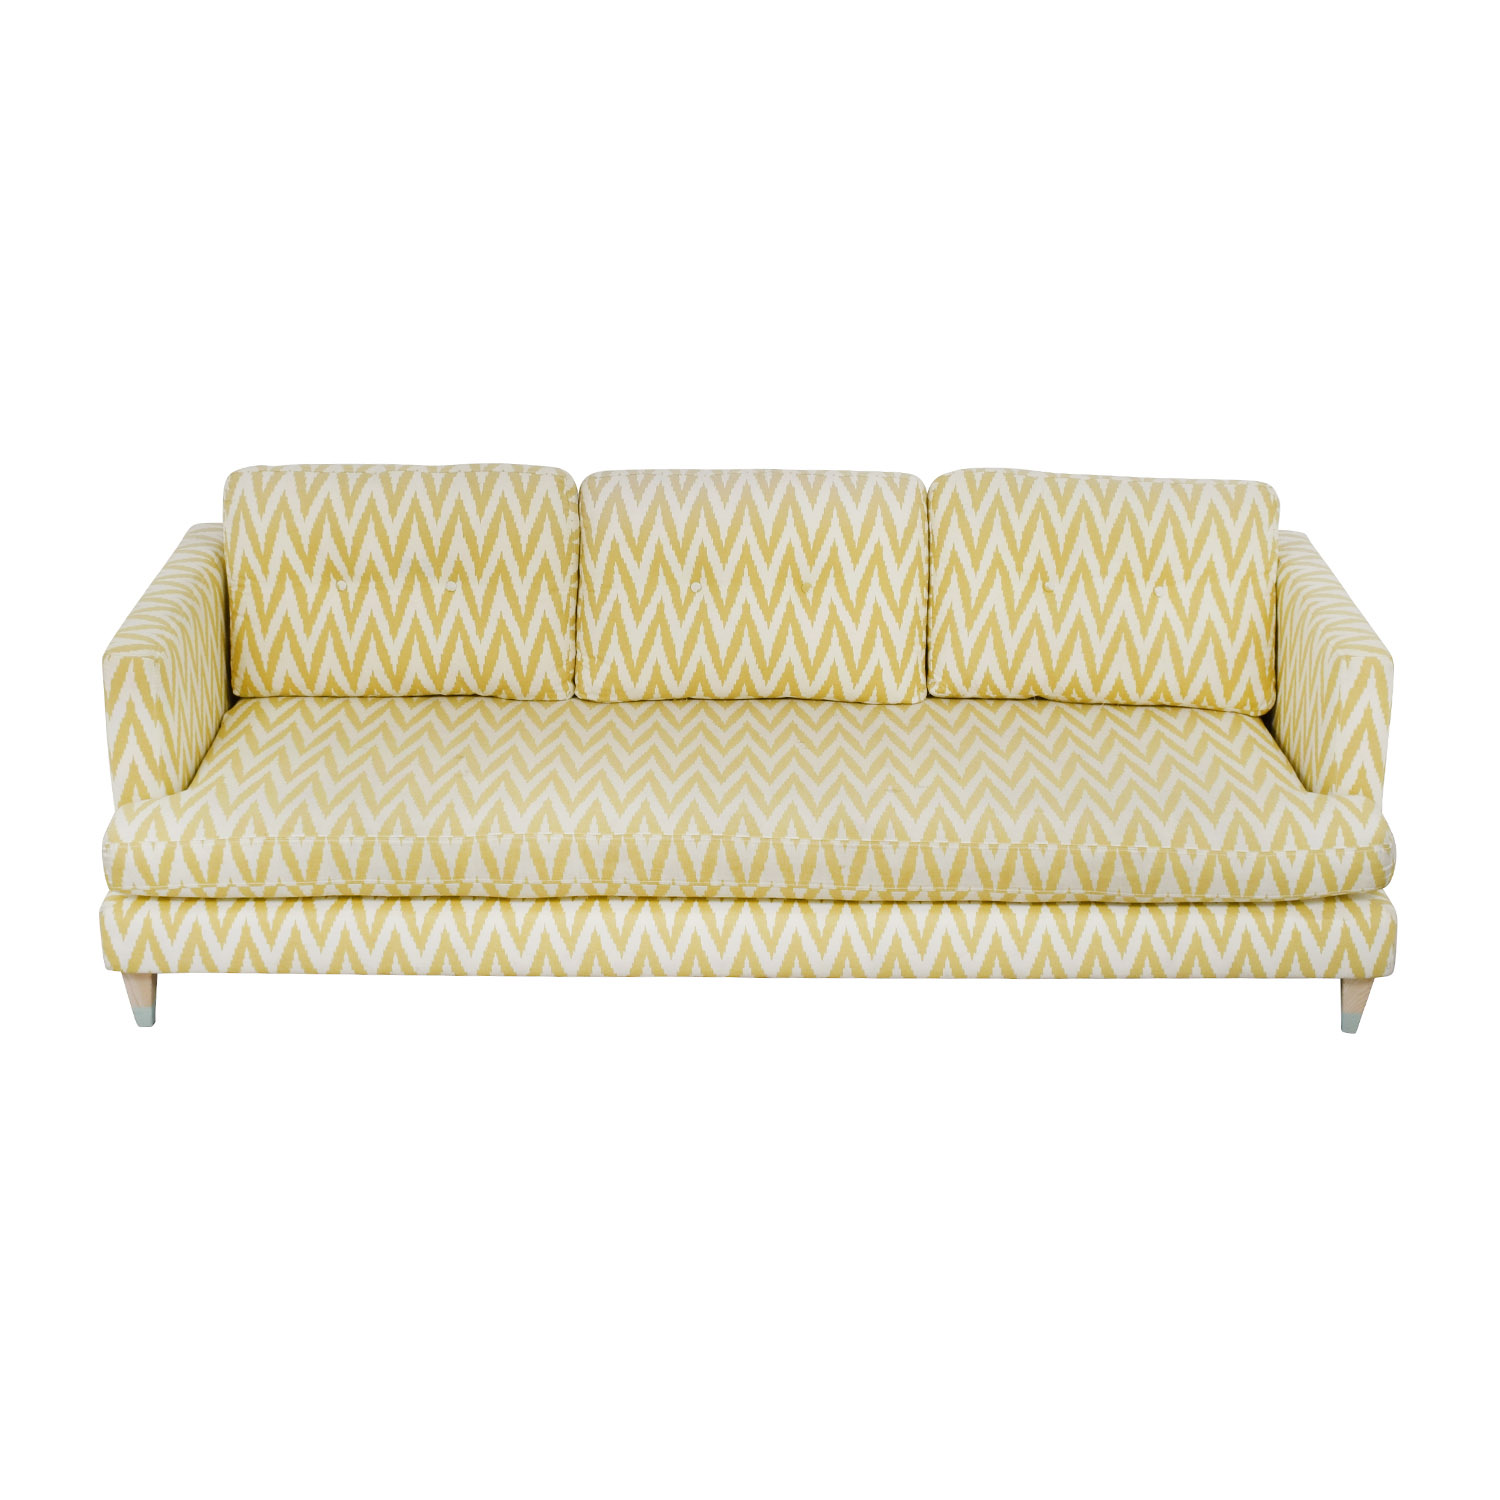 Fantastic 58 Off West Elm West Elm Yellow And White Single Cushion Sofa Sofas Pabps2019 Chair Design Images Pabps2019Com